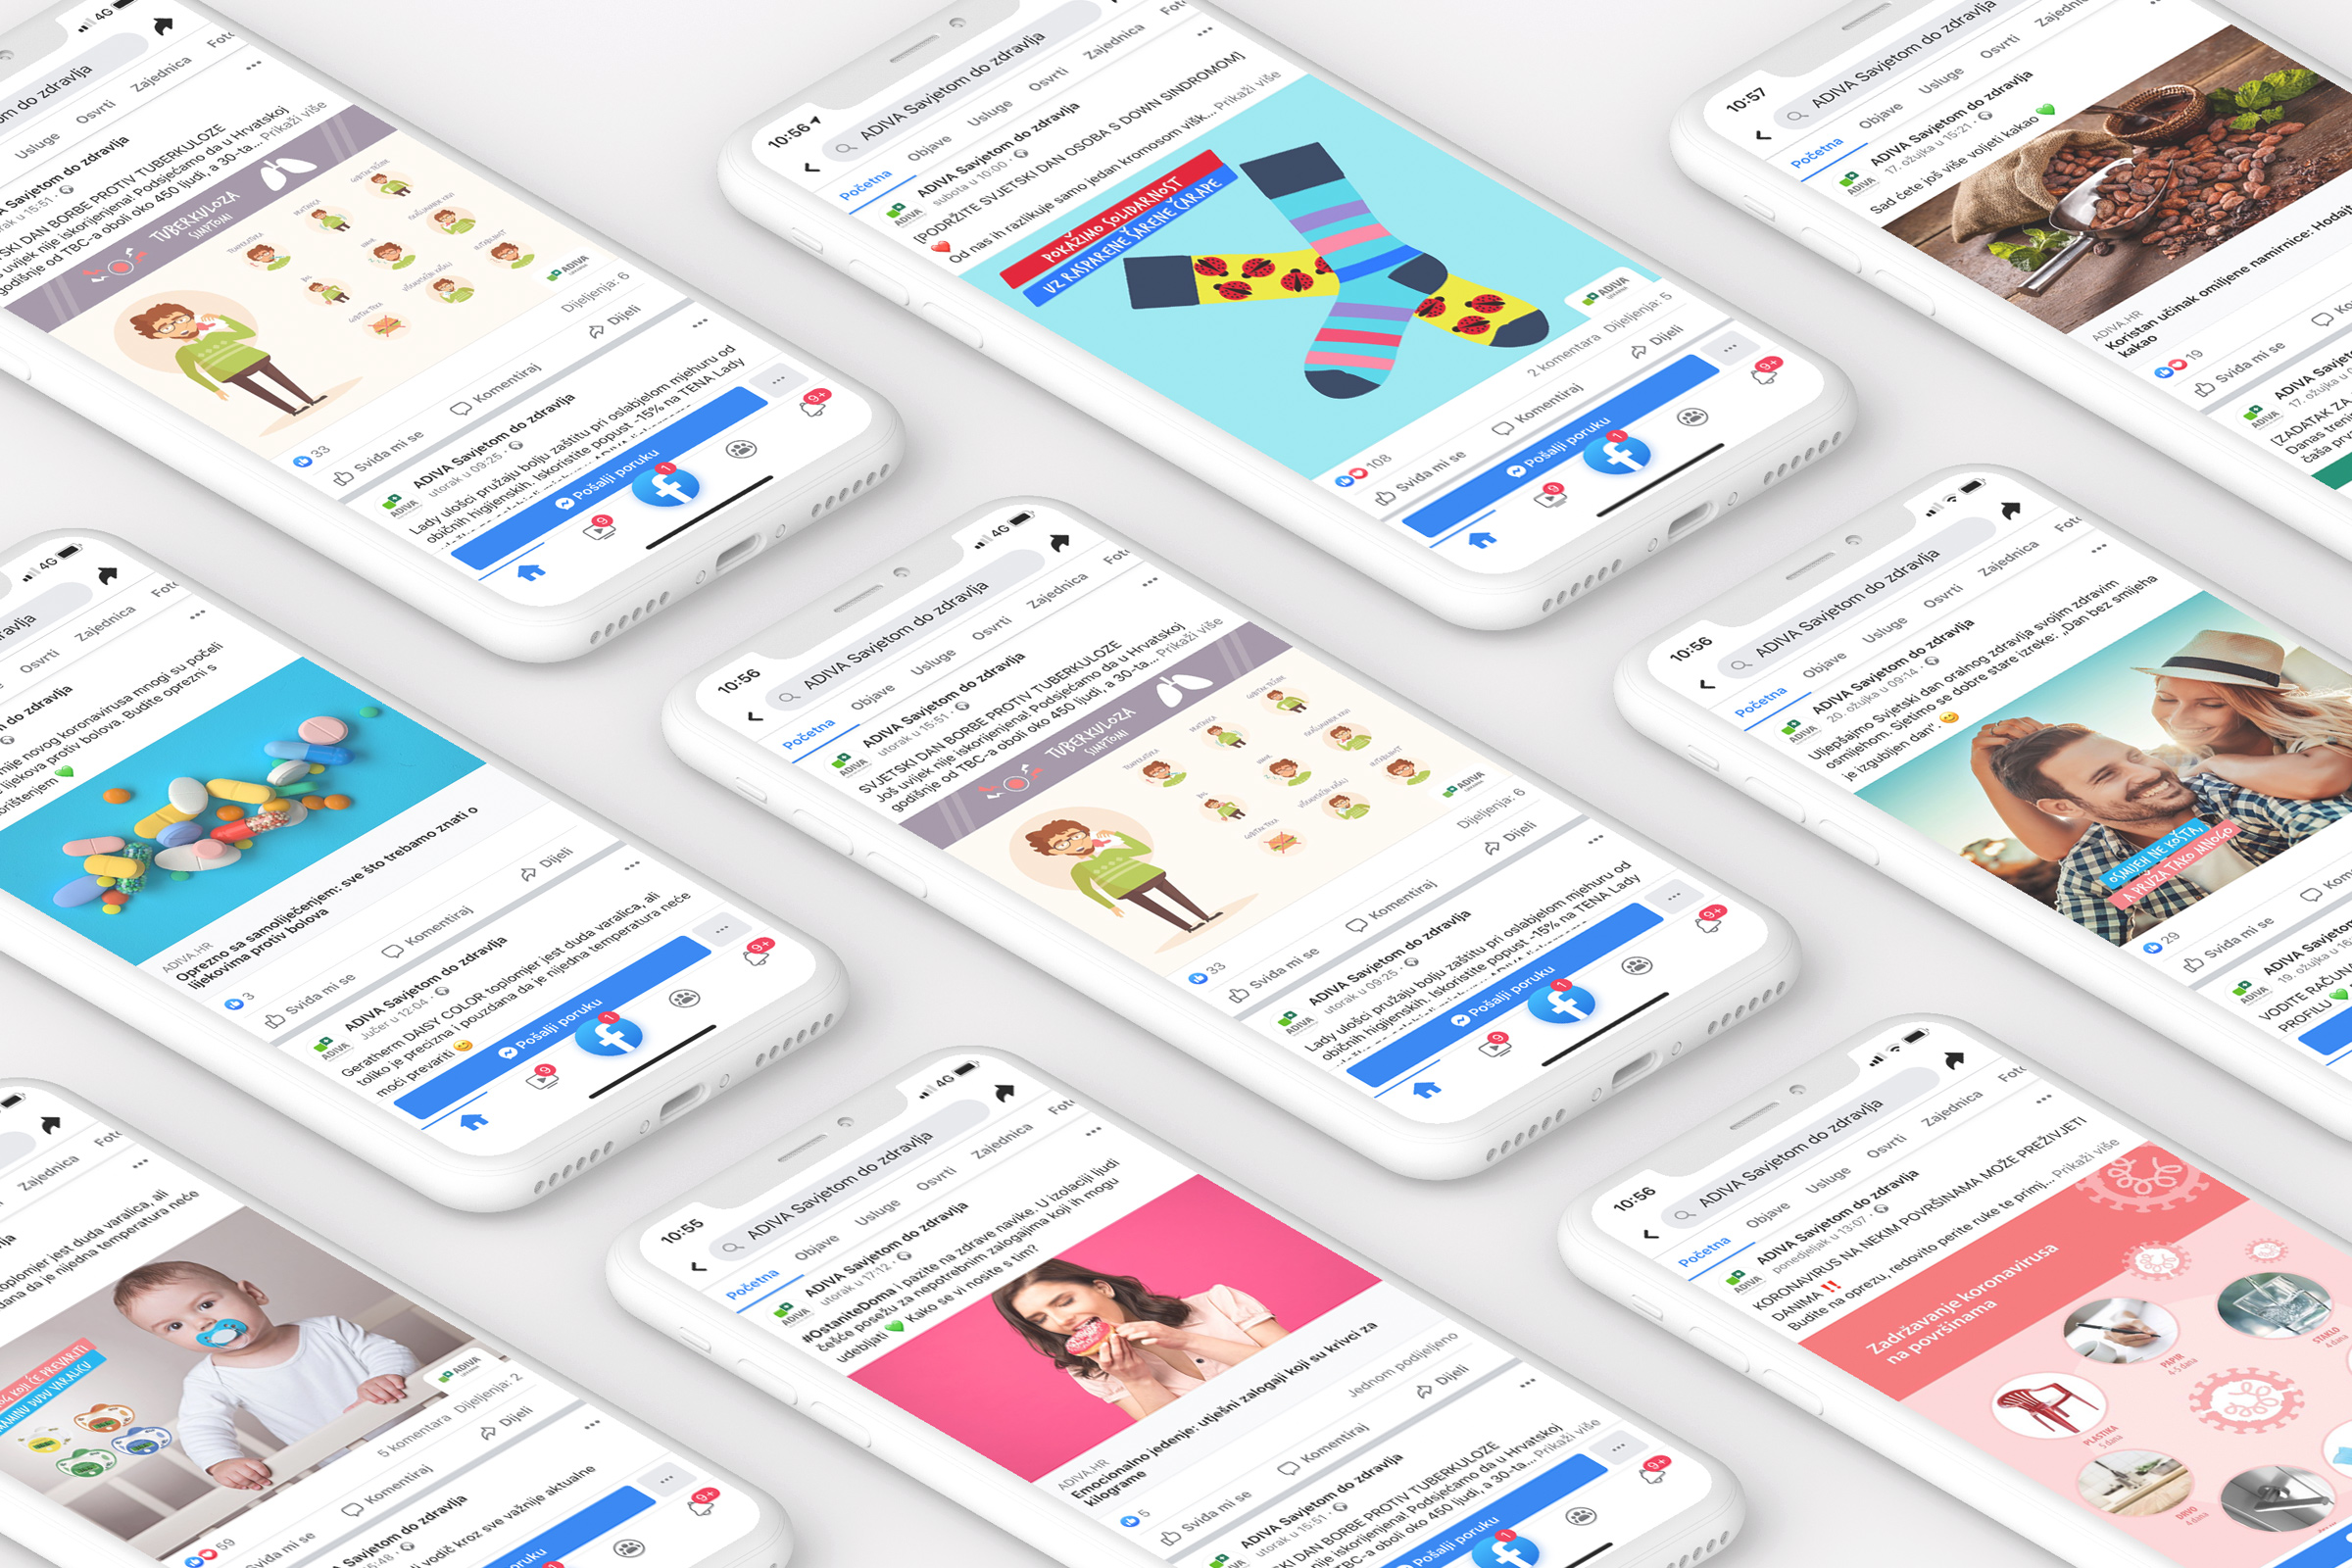 Production and UX/UI design of mobile application